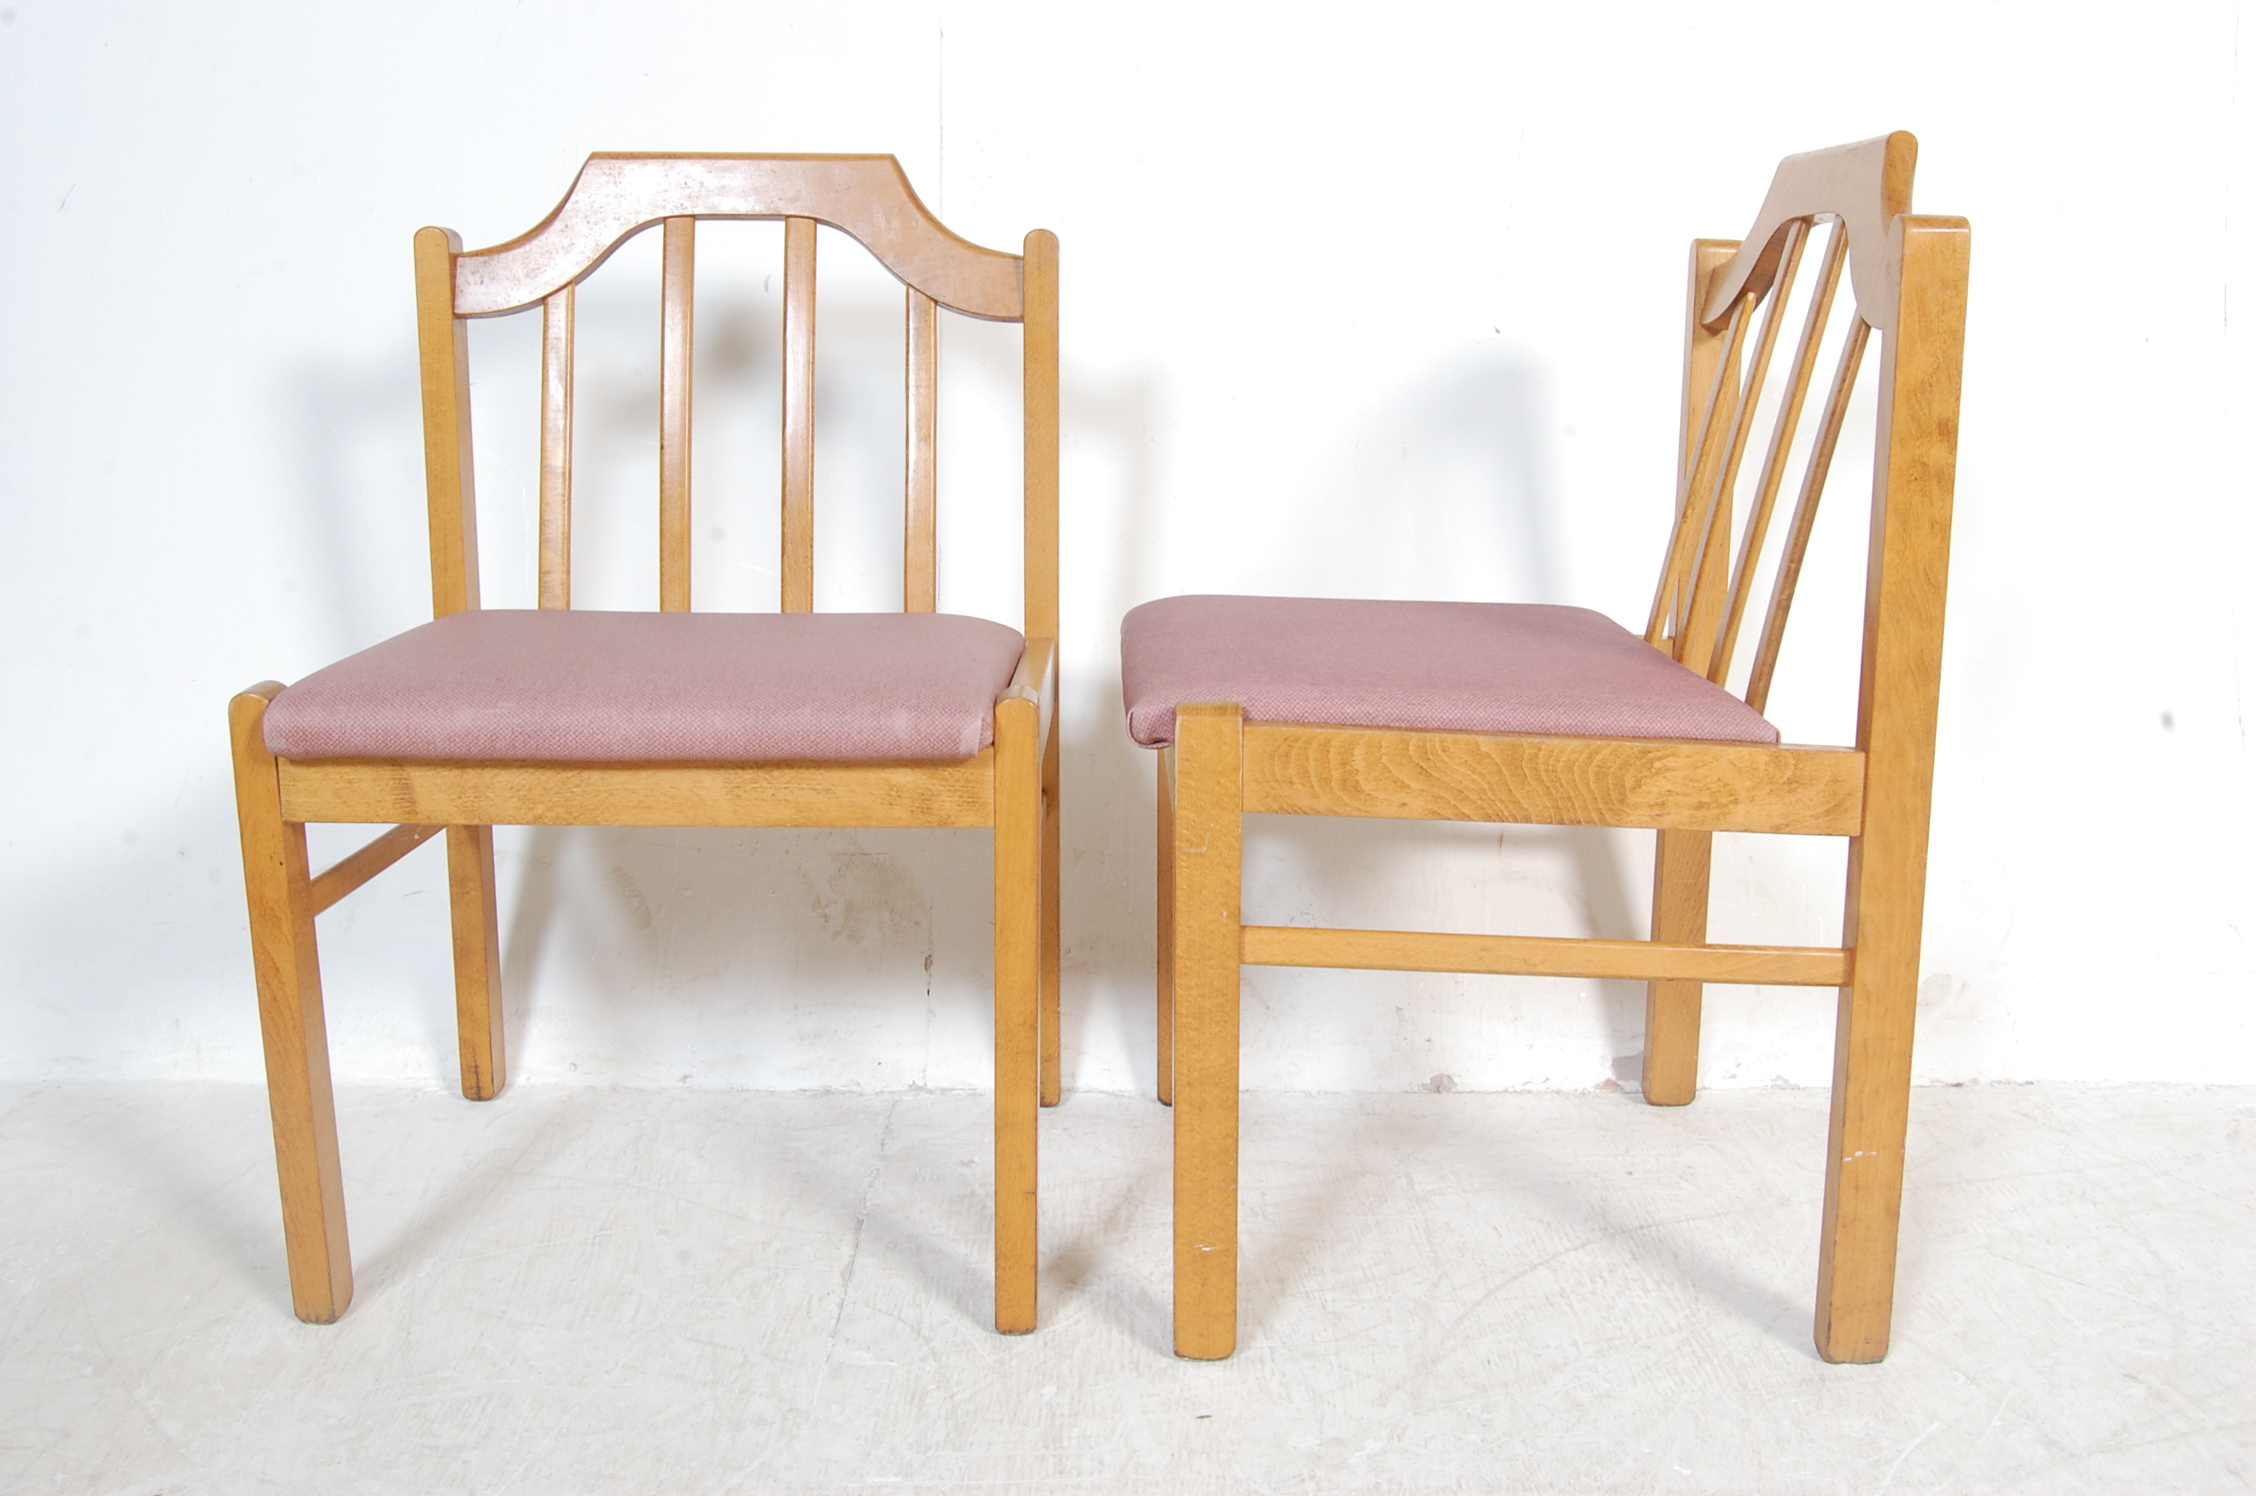 EIGHT VINTAGE GOLDEN OAK DINING CHAIRS - Image 8 of 8